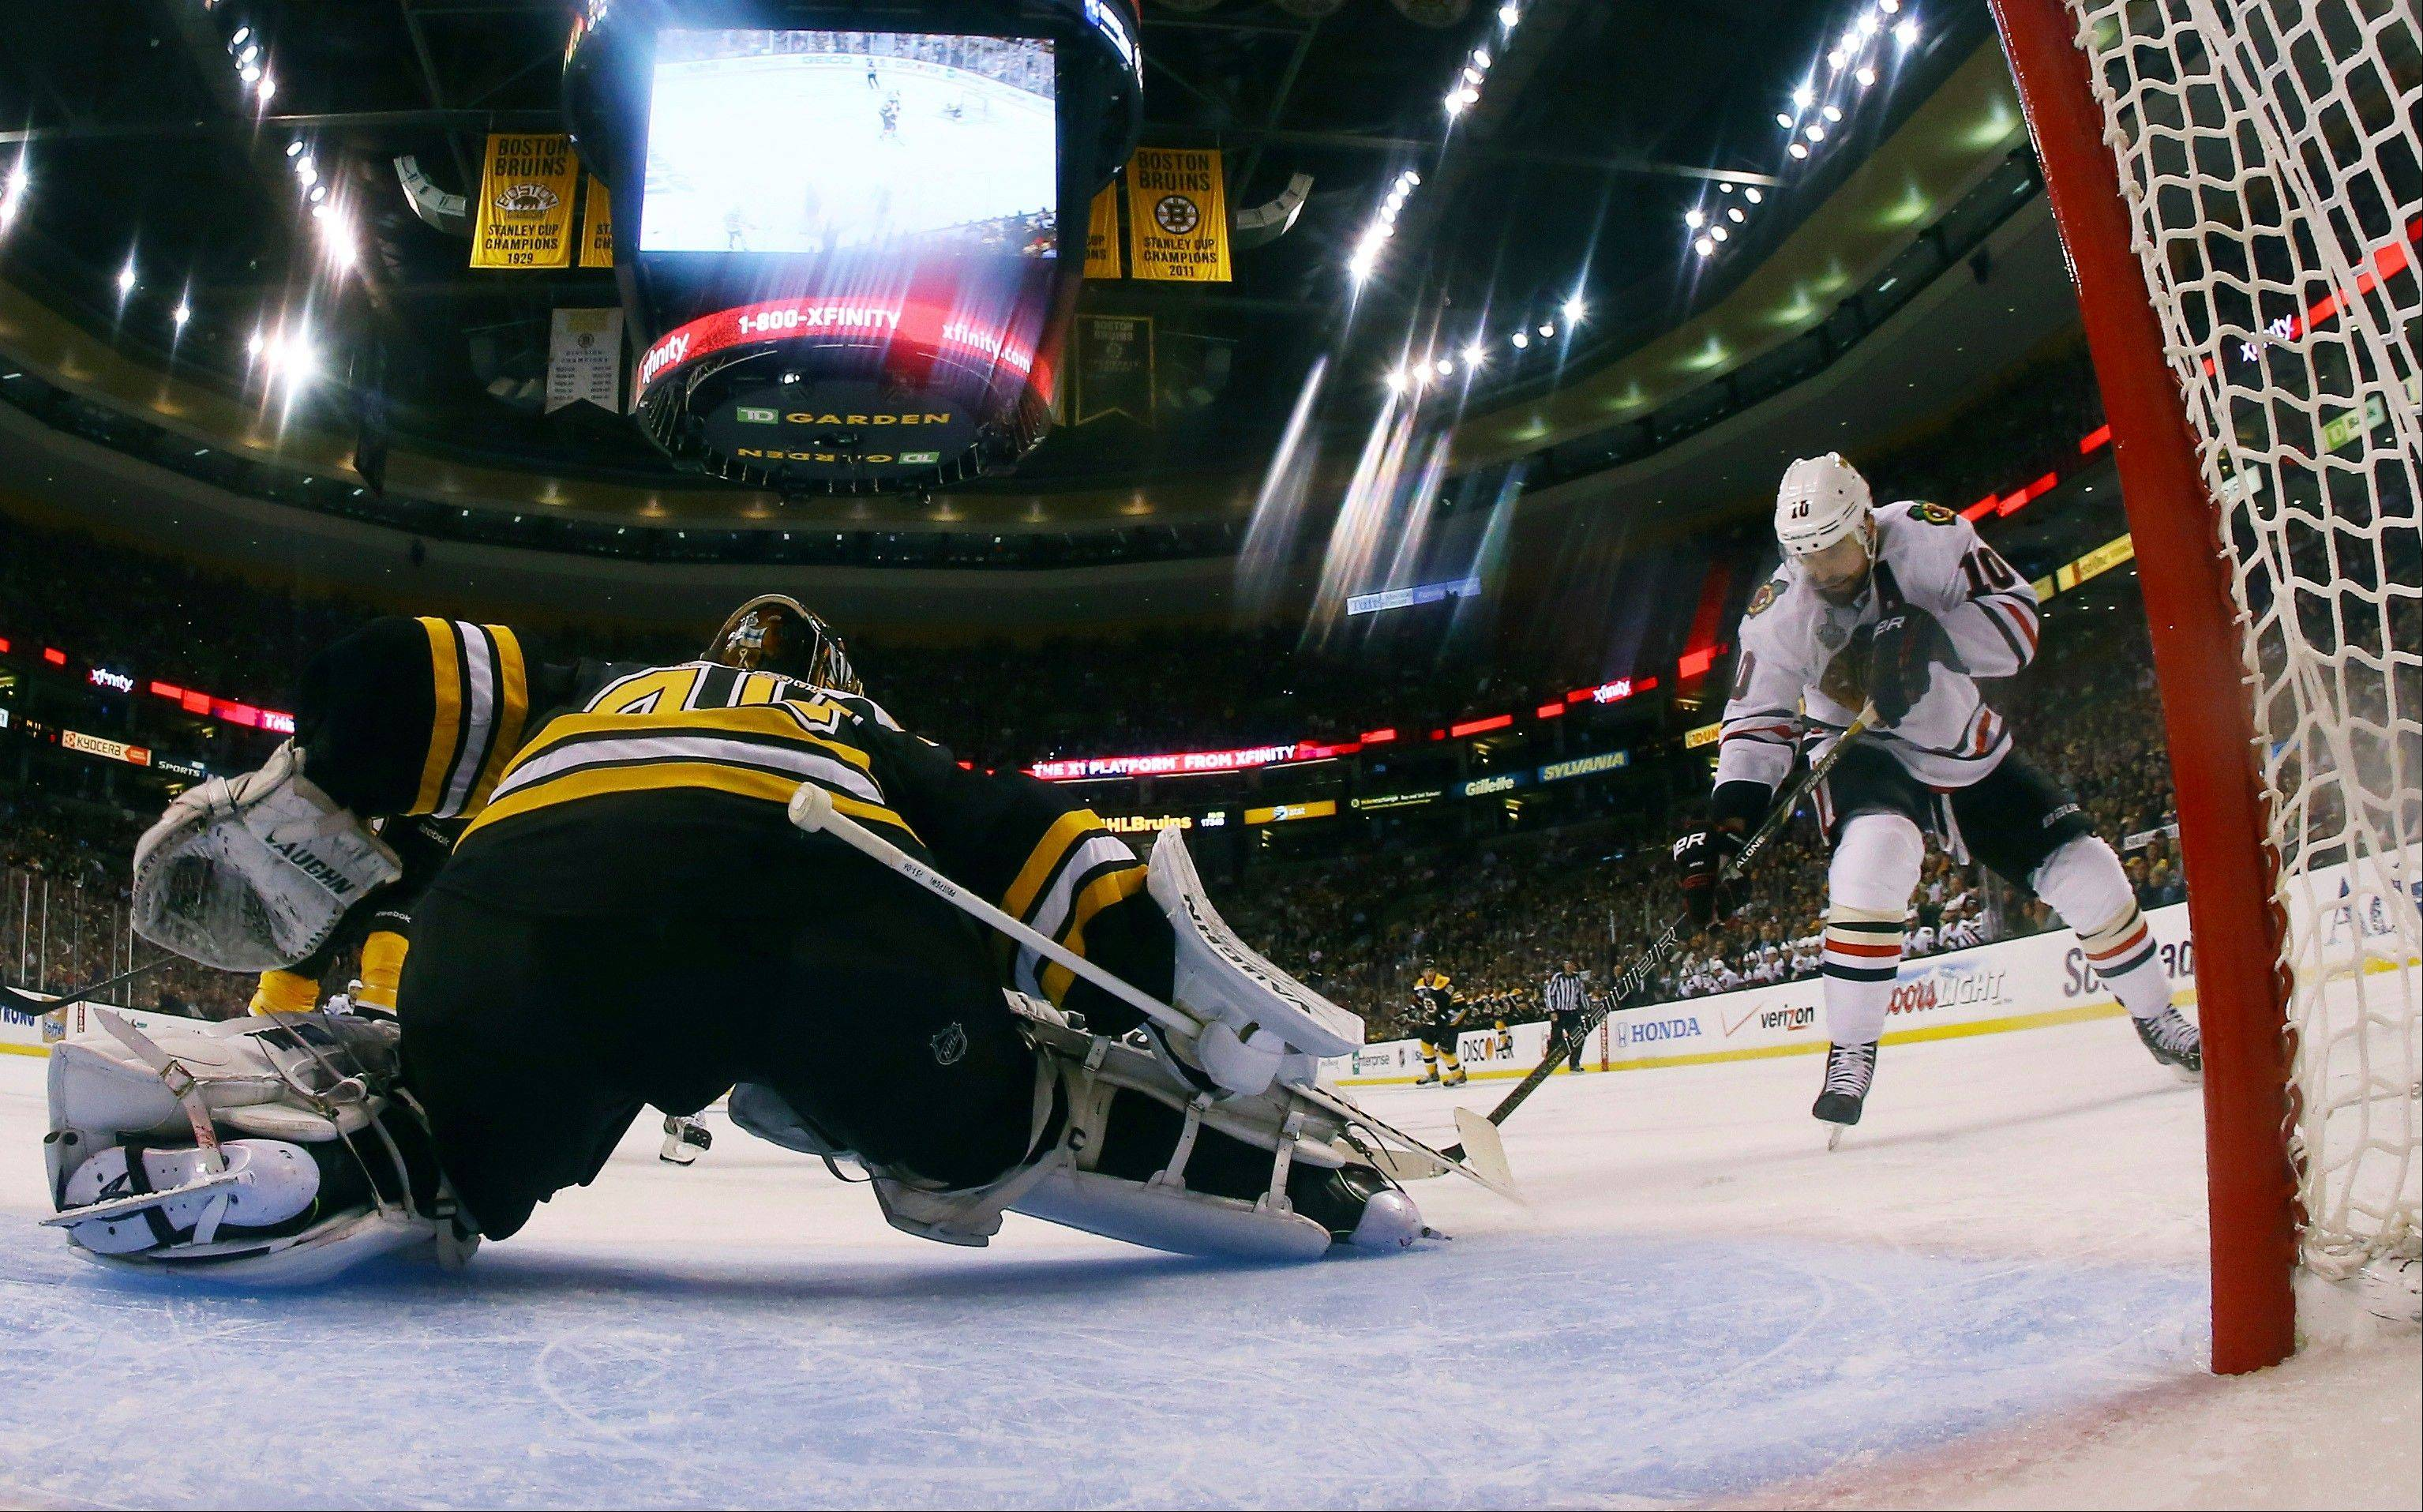 Against Boston Bruins goalie Tuukka Rask, the Blackhawks power play unit is 0-for-11.